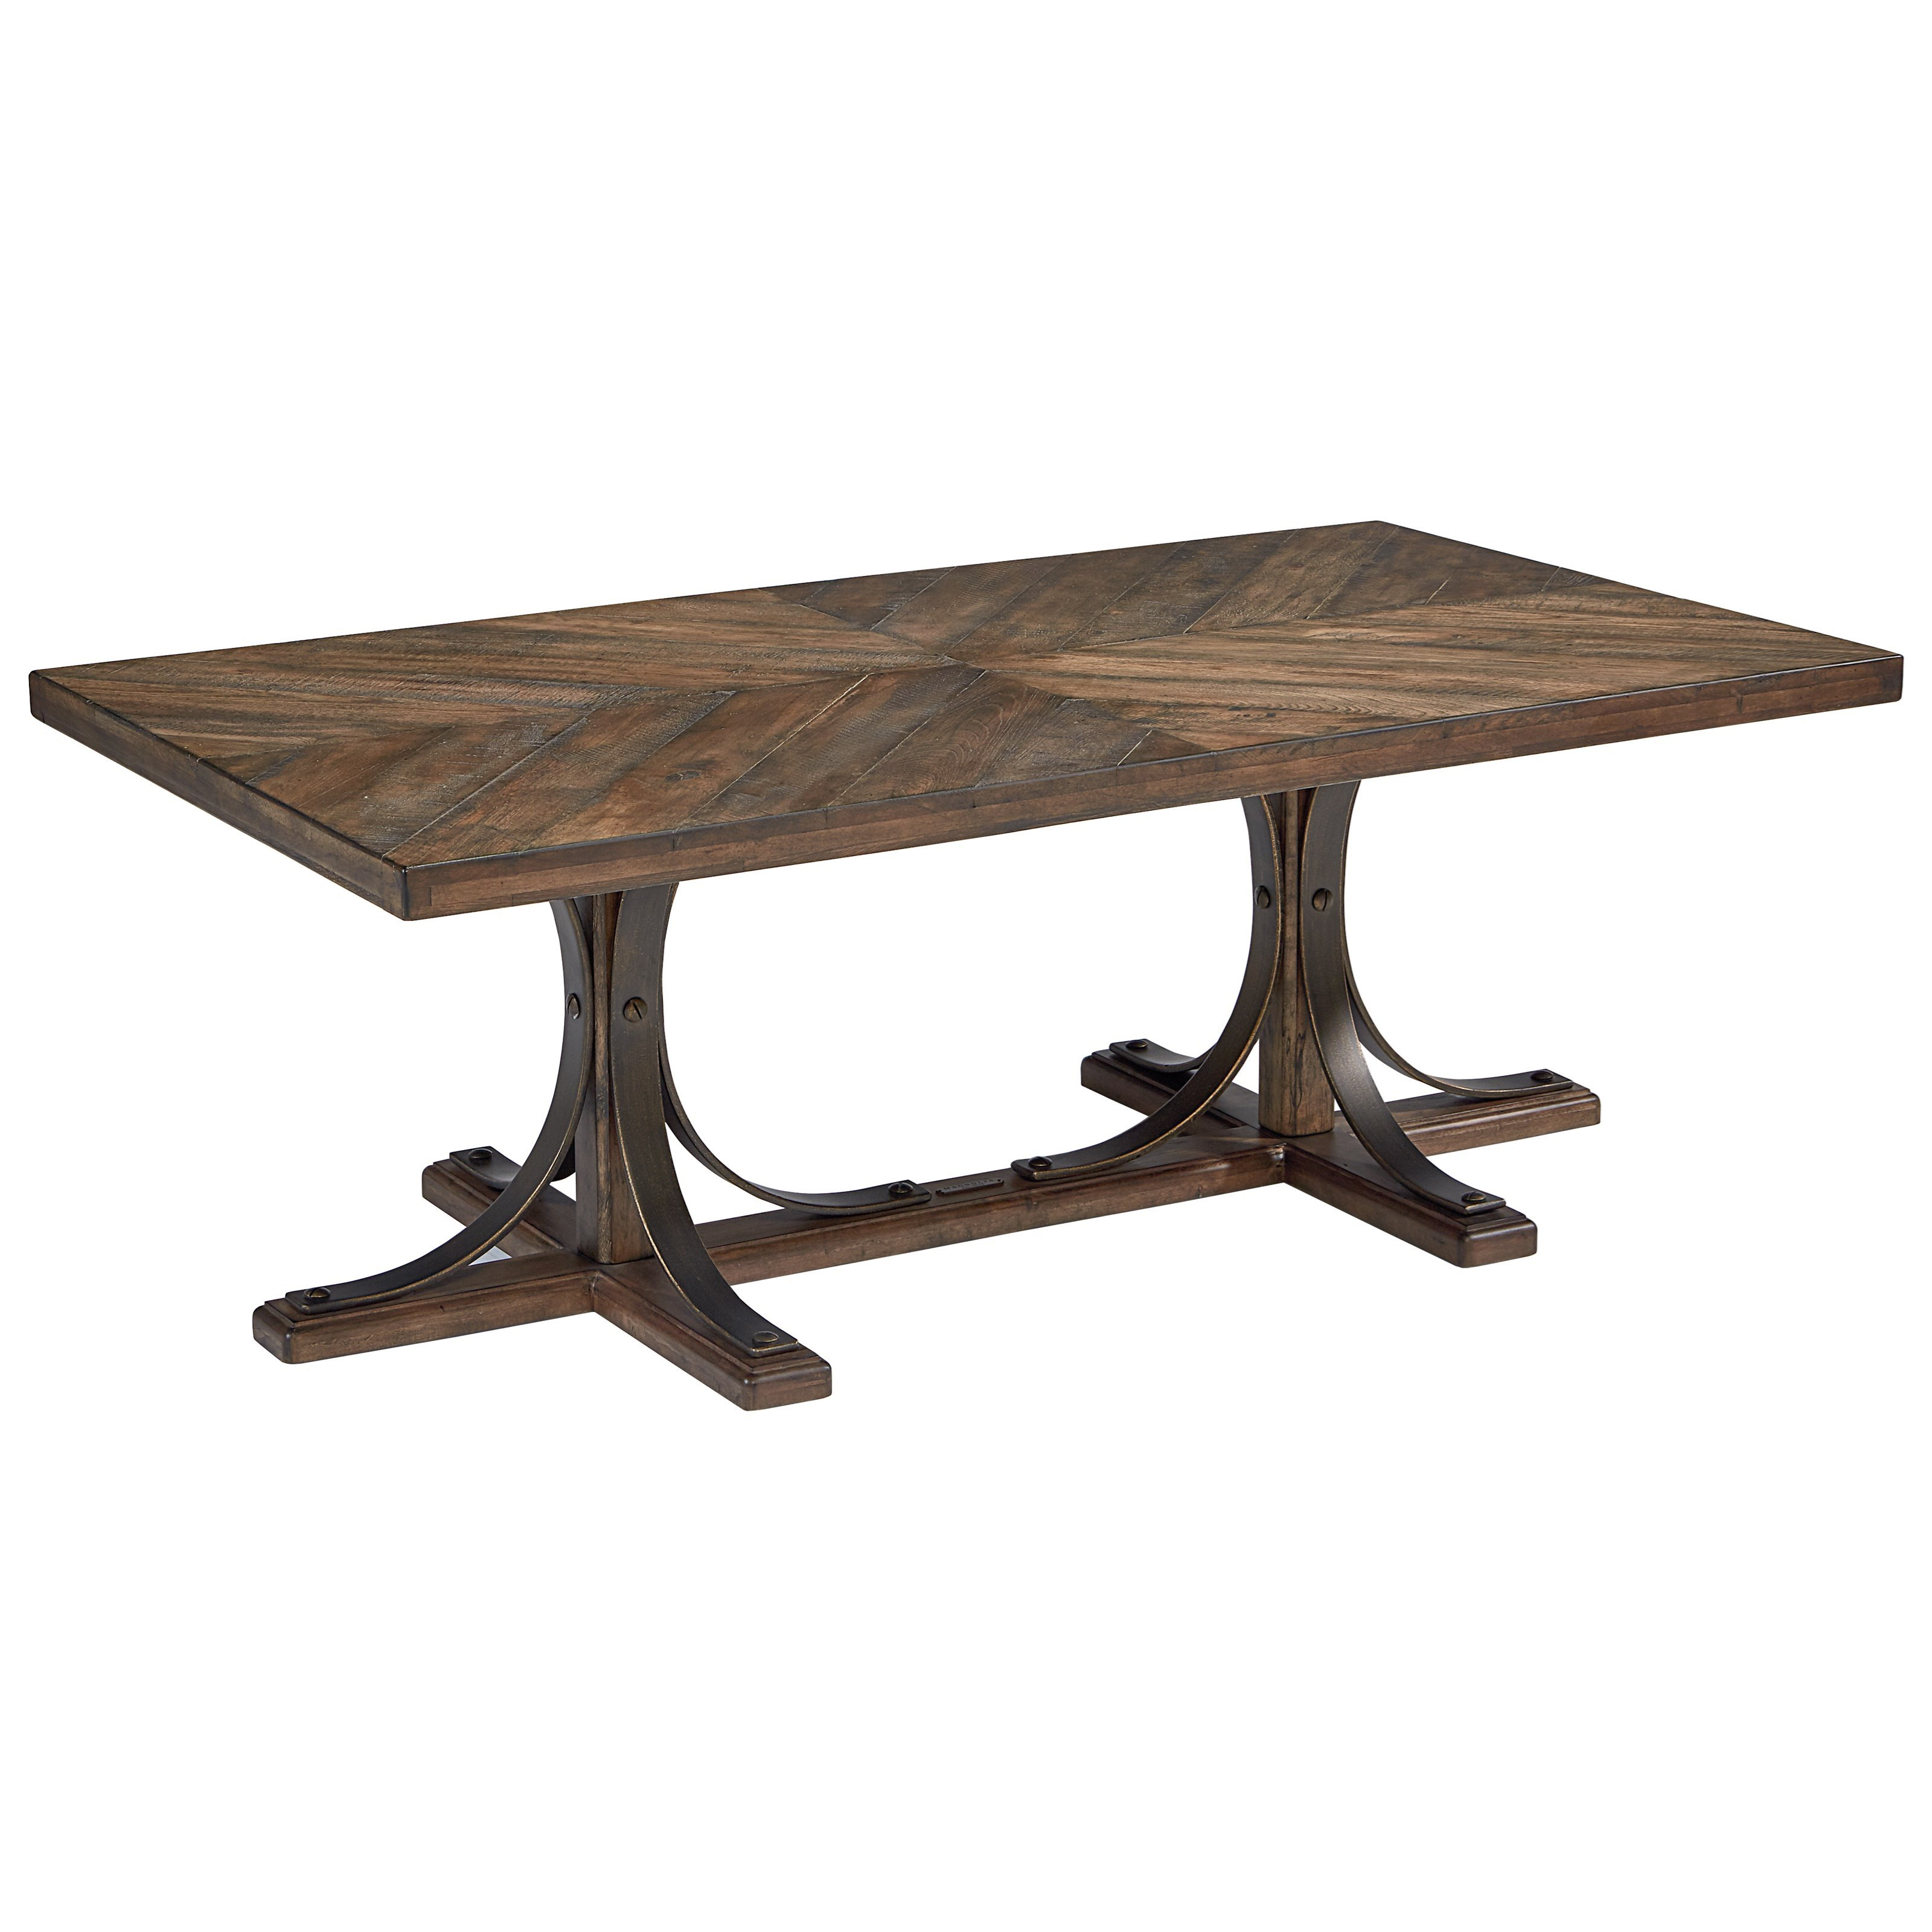 Magnolia Home by Joanna Gaines Traditional Wood Top Cocktail Table